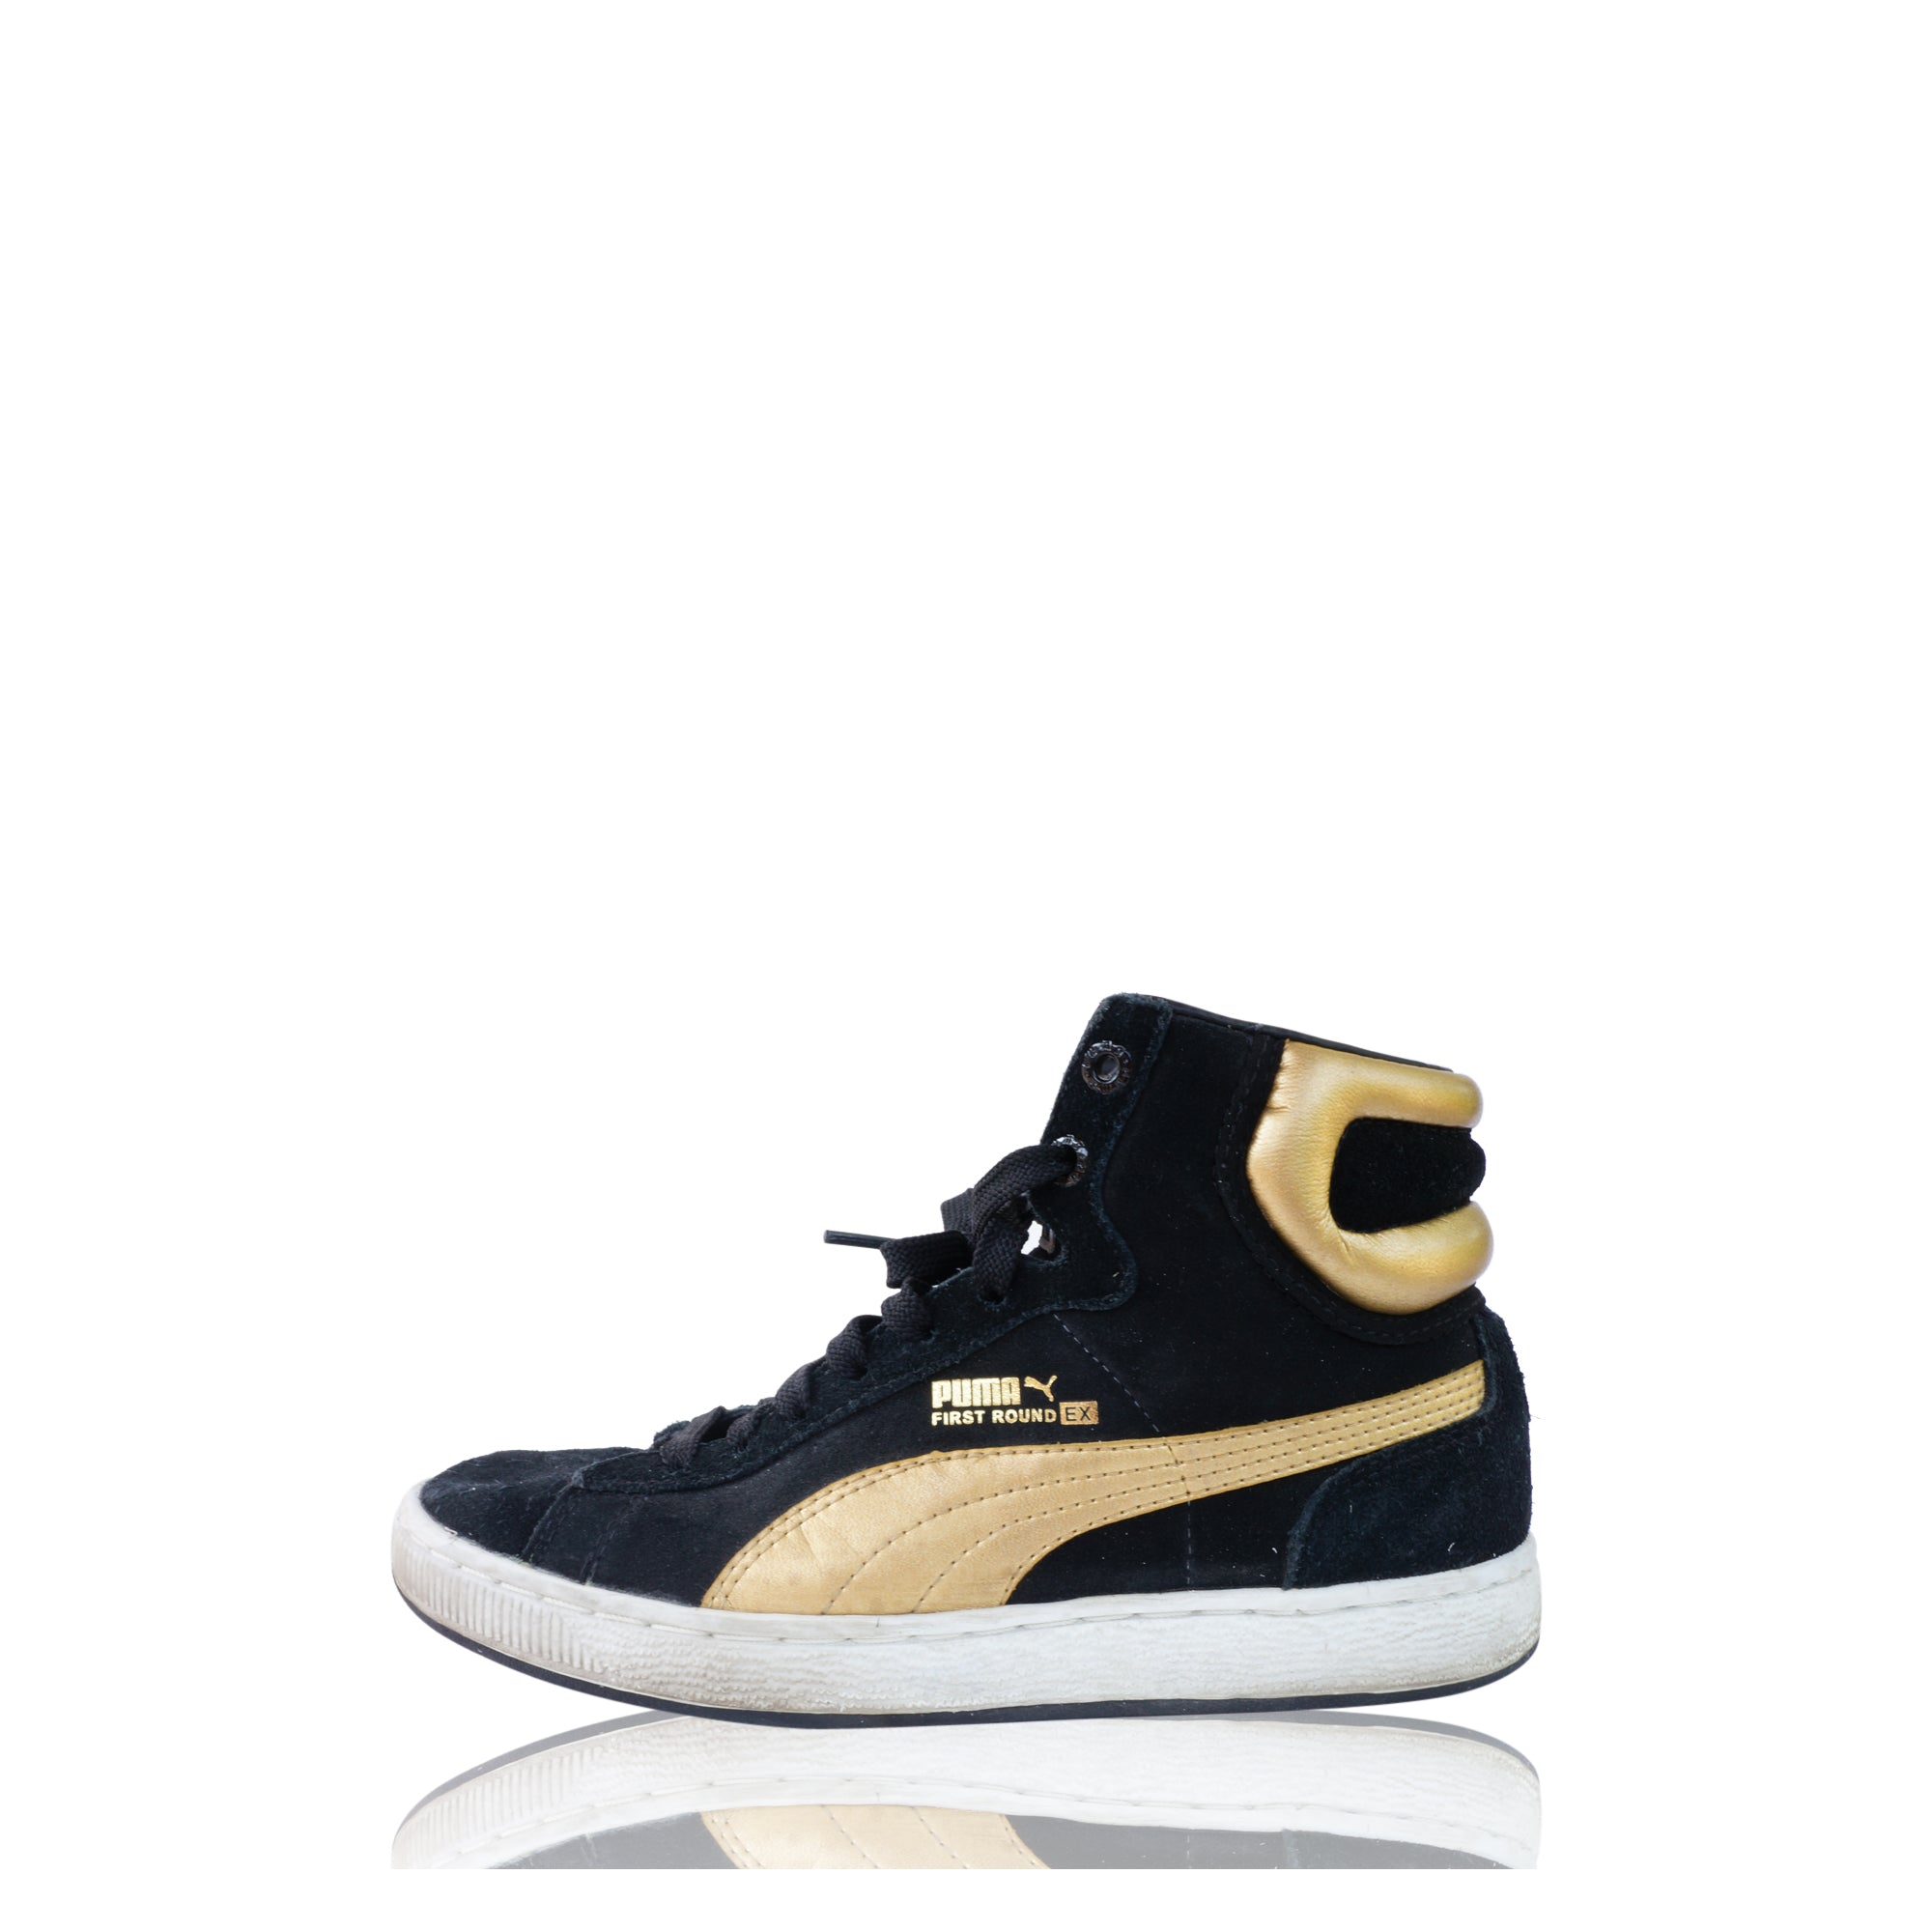 PUMA FIRST ROUND EX HIGH TOP SNEAKERS